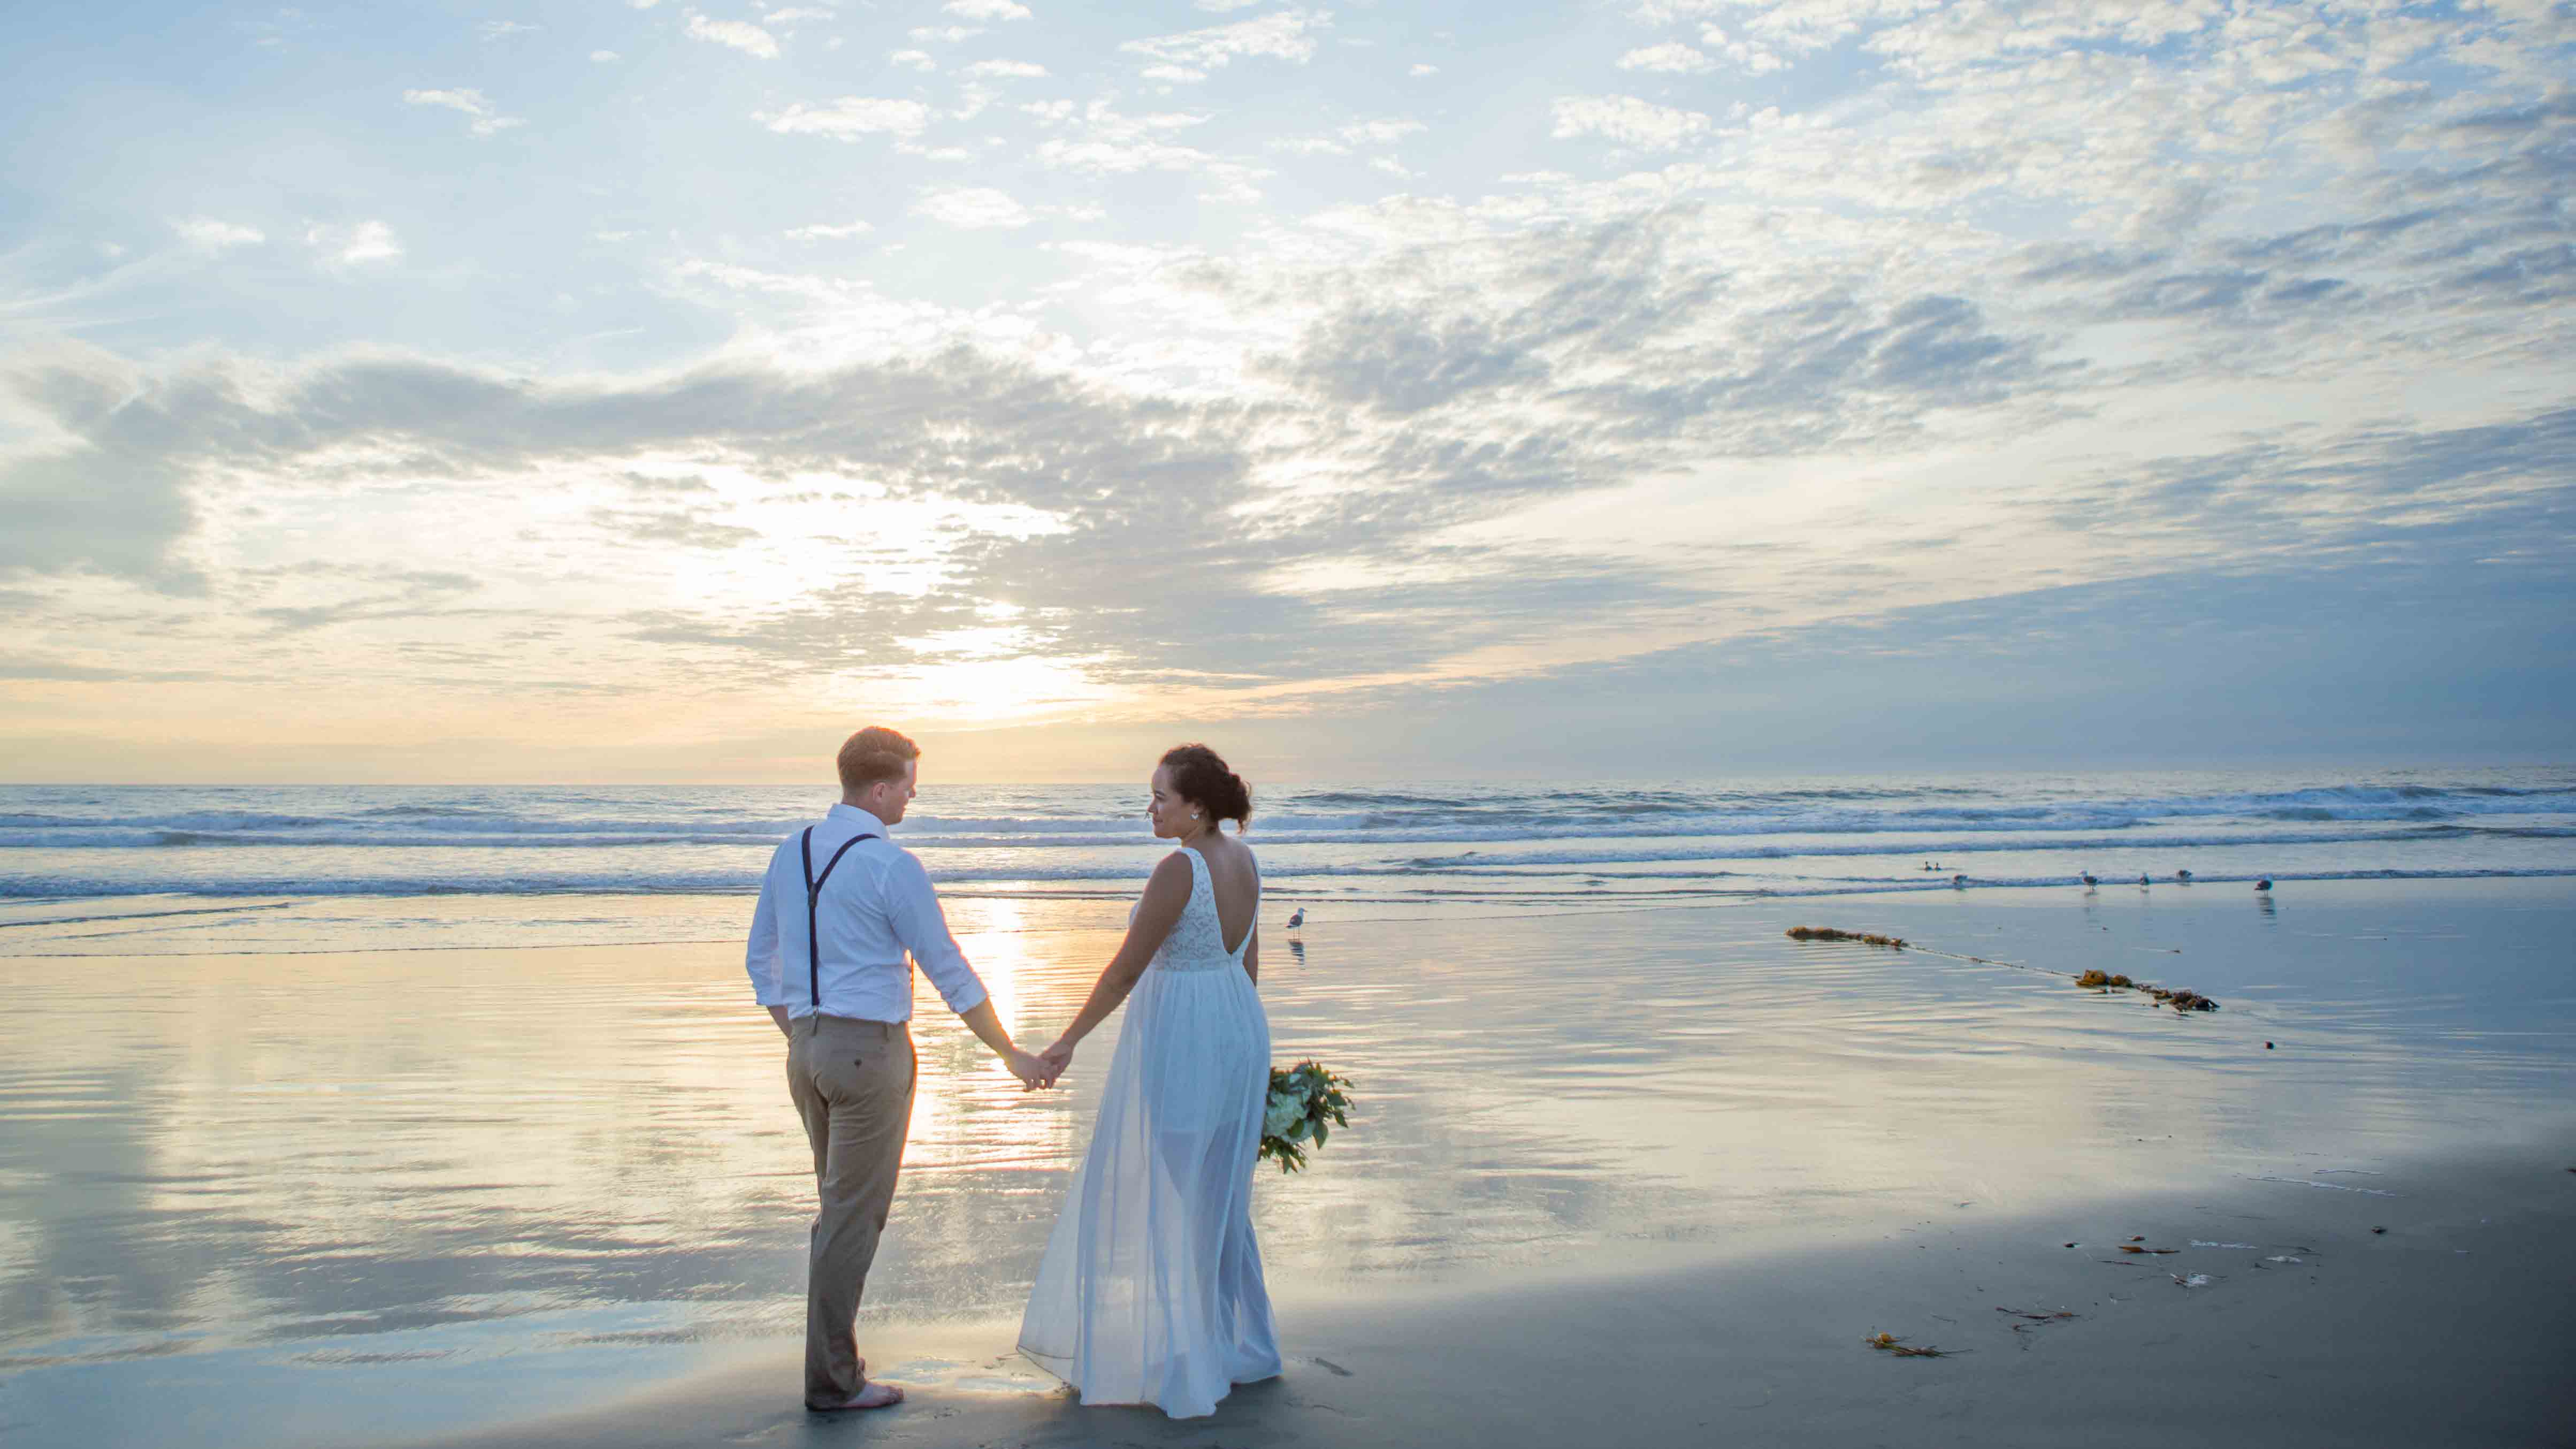 Beach Wedding 101 Photo by Ashley Strong